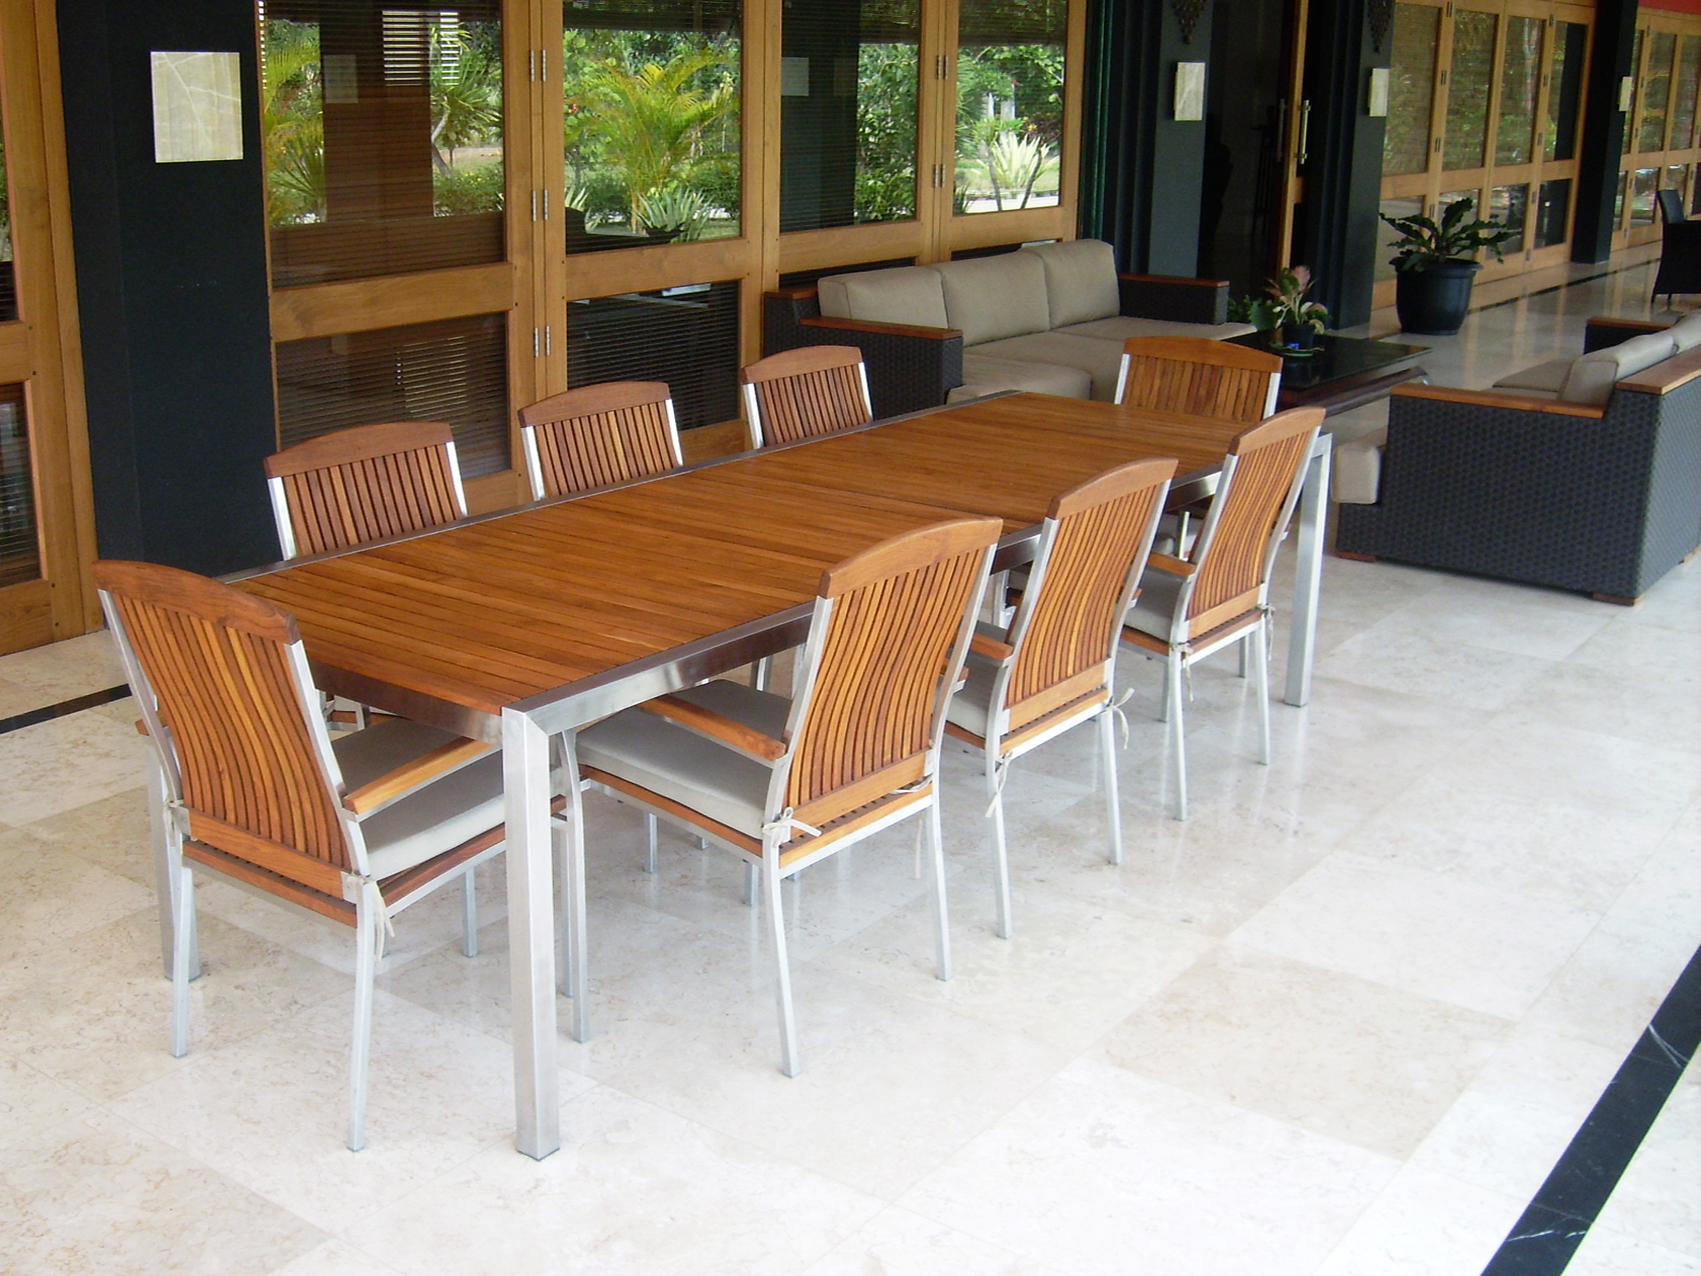 Teak outdoor dining table for villa projects